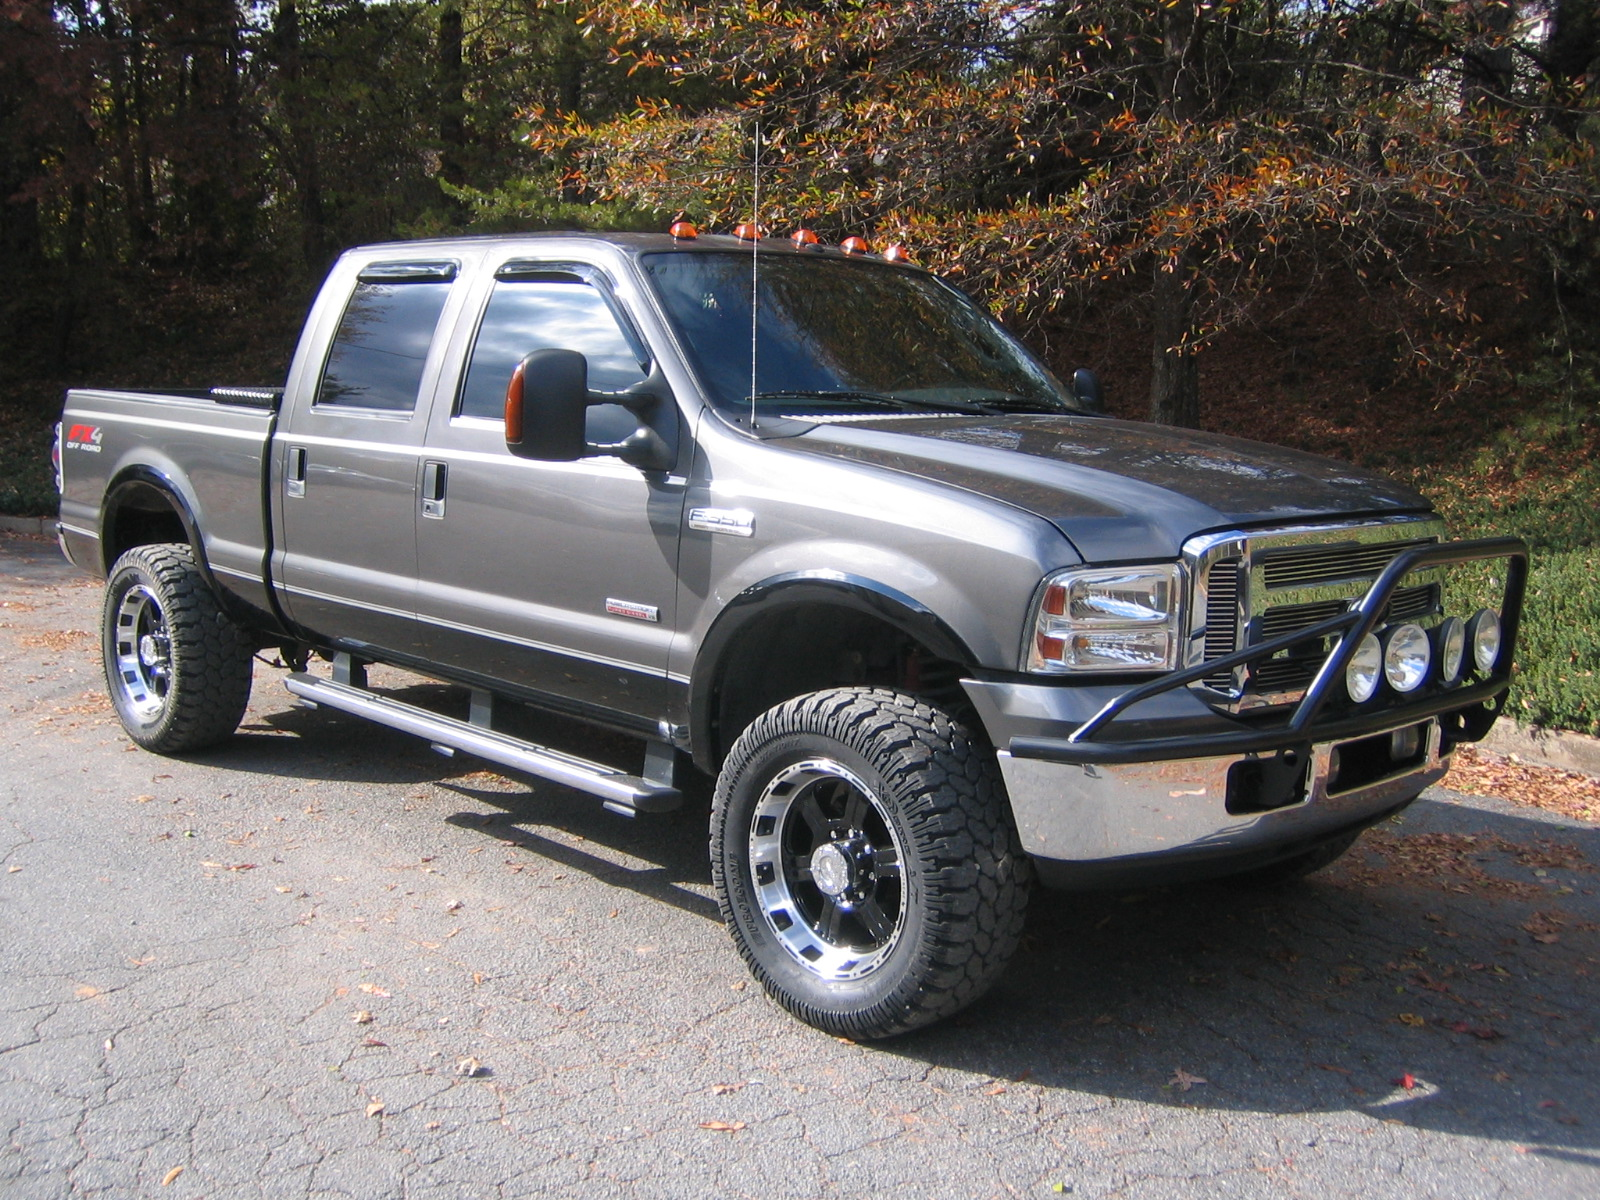 Ford F-350 Super Duty 2004 #1